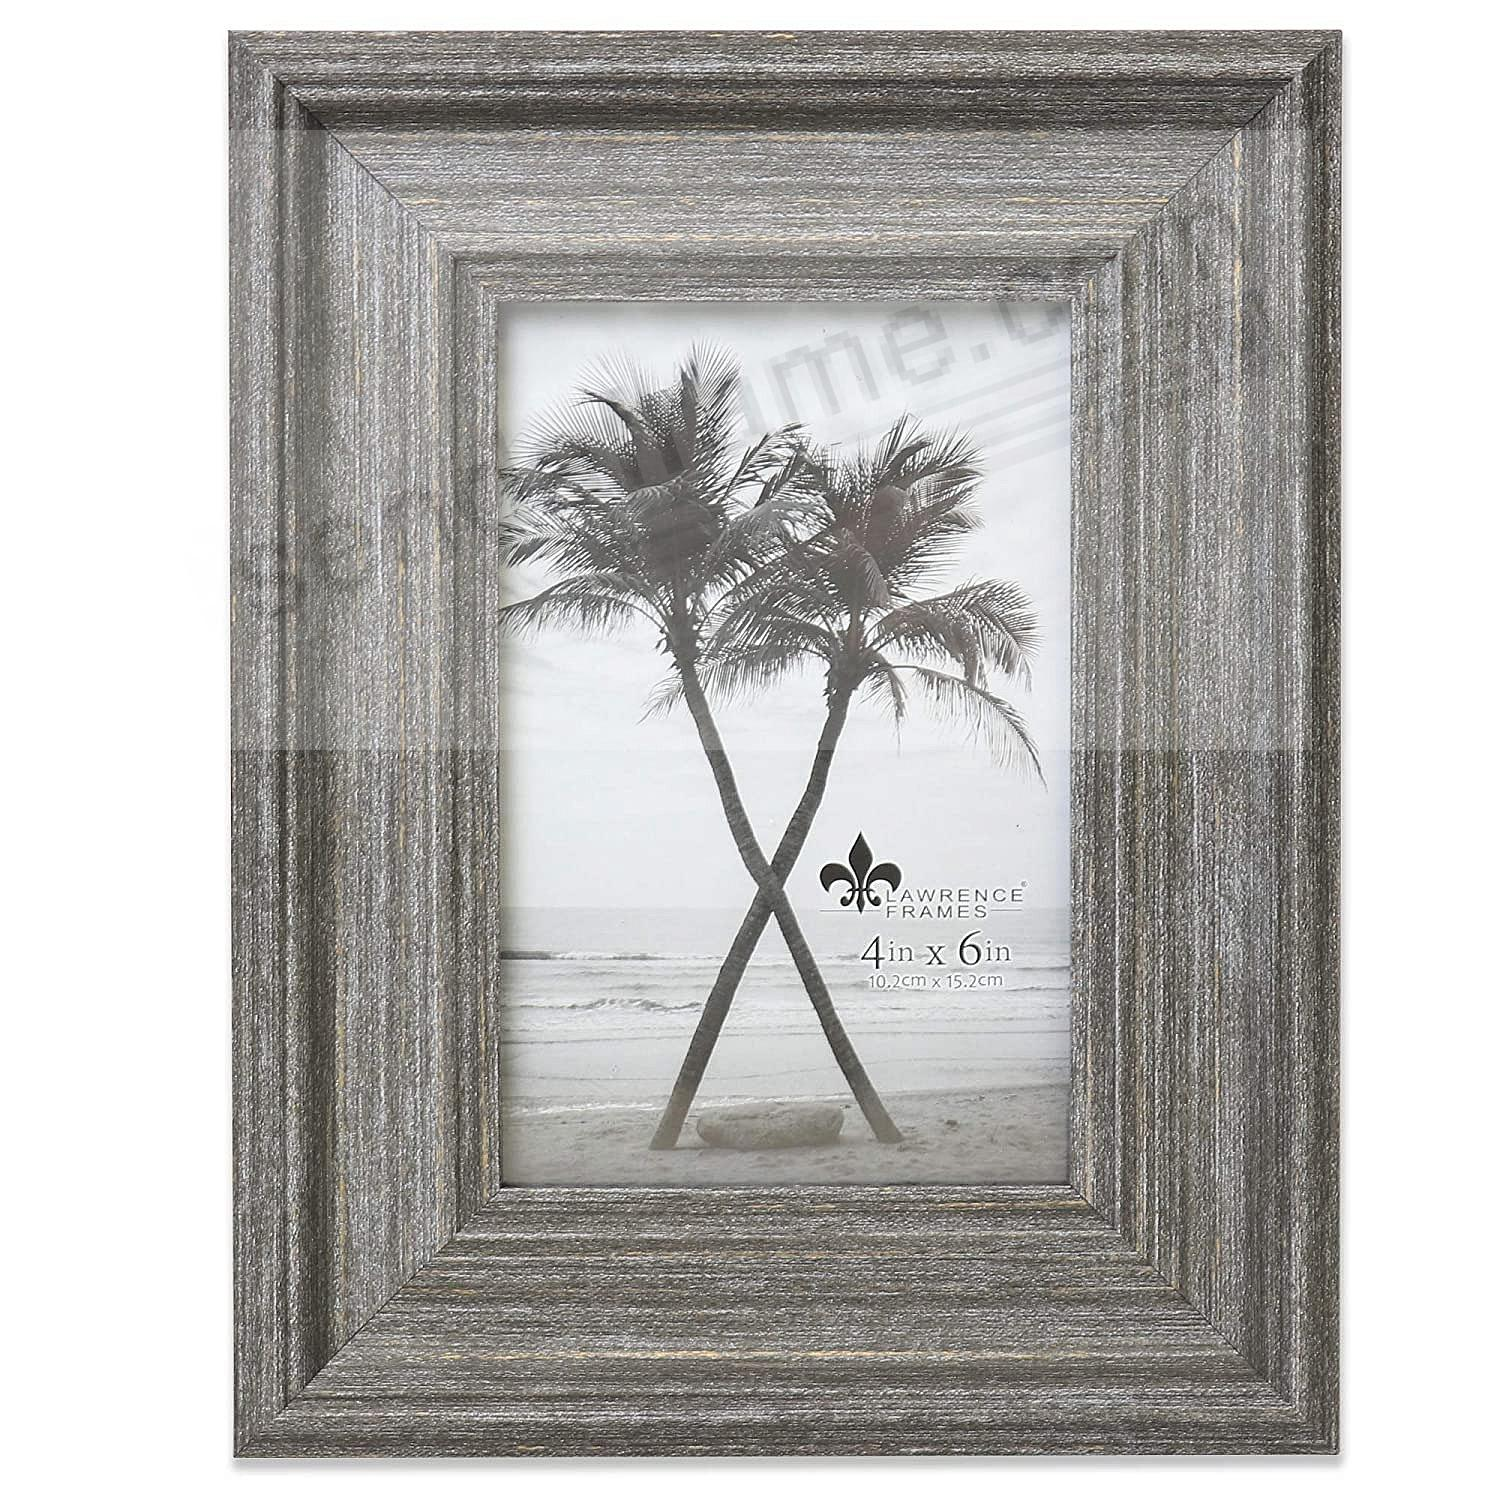 Antique GRAY MARLO 5x7 frame by Lawrence®